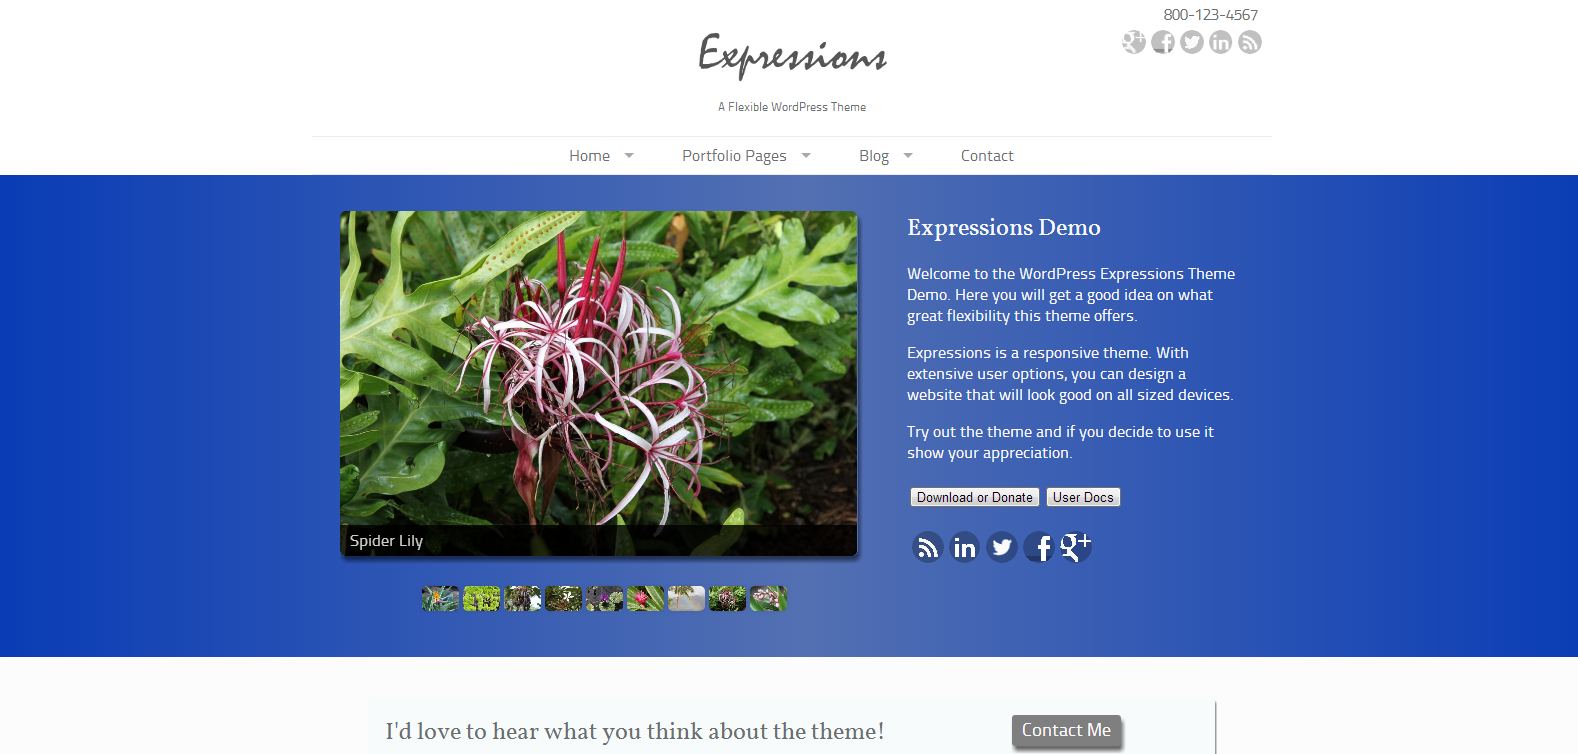 Expressions Theme